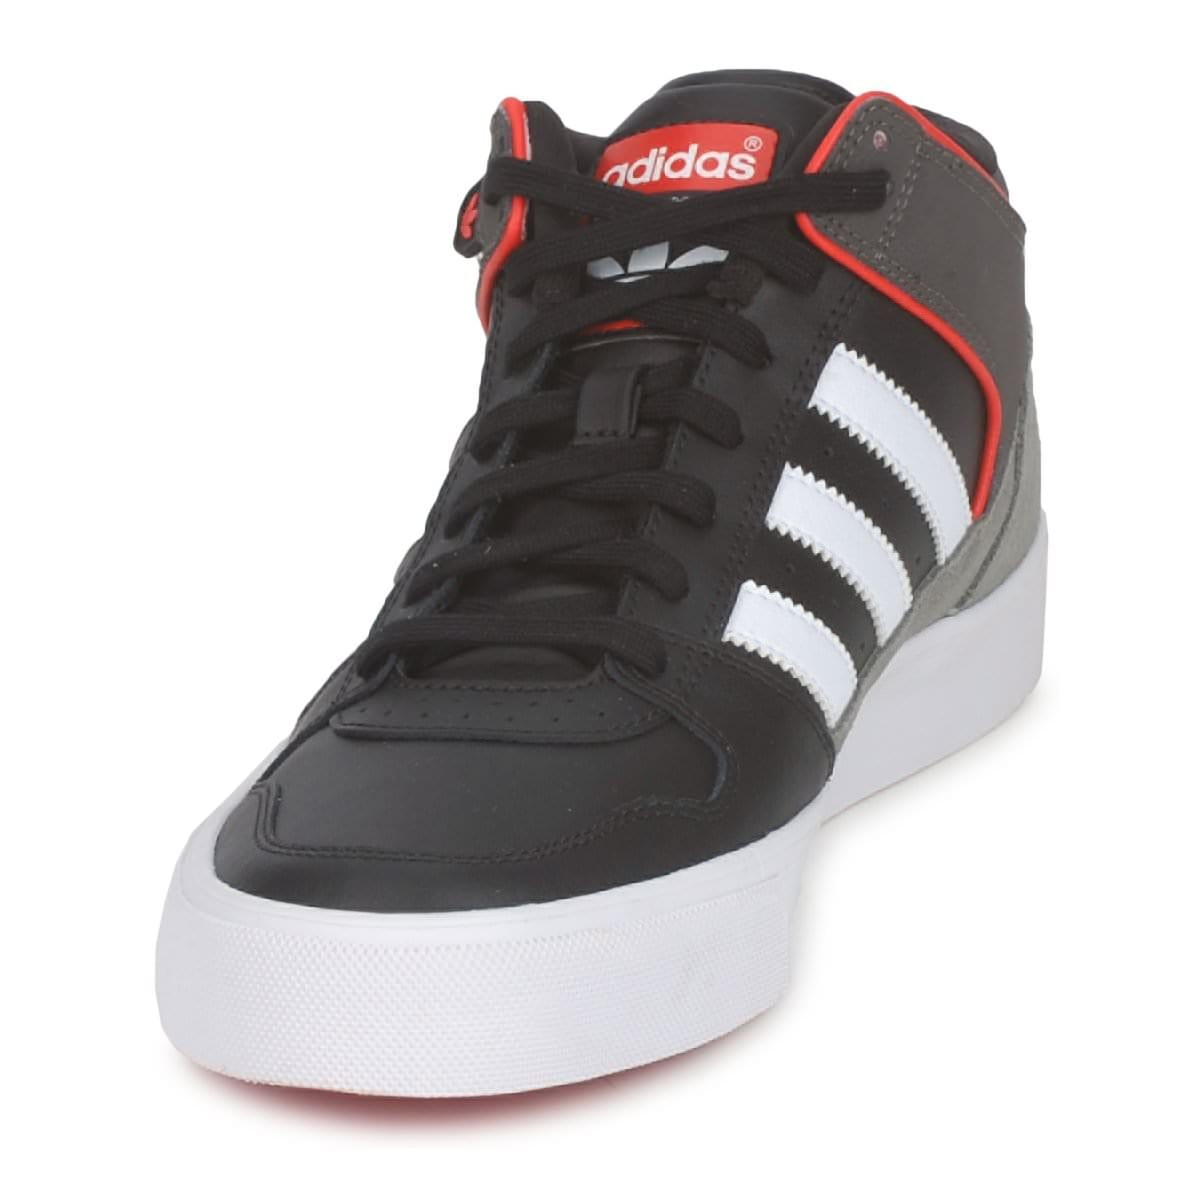 chaussure adidas montant